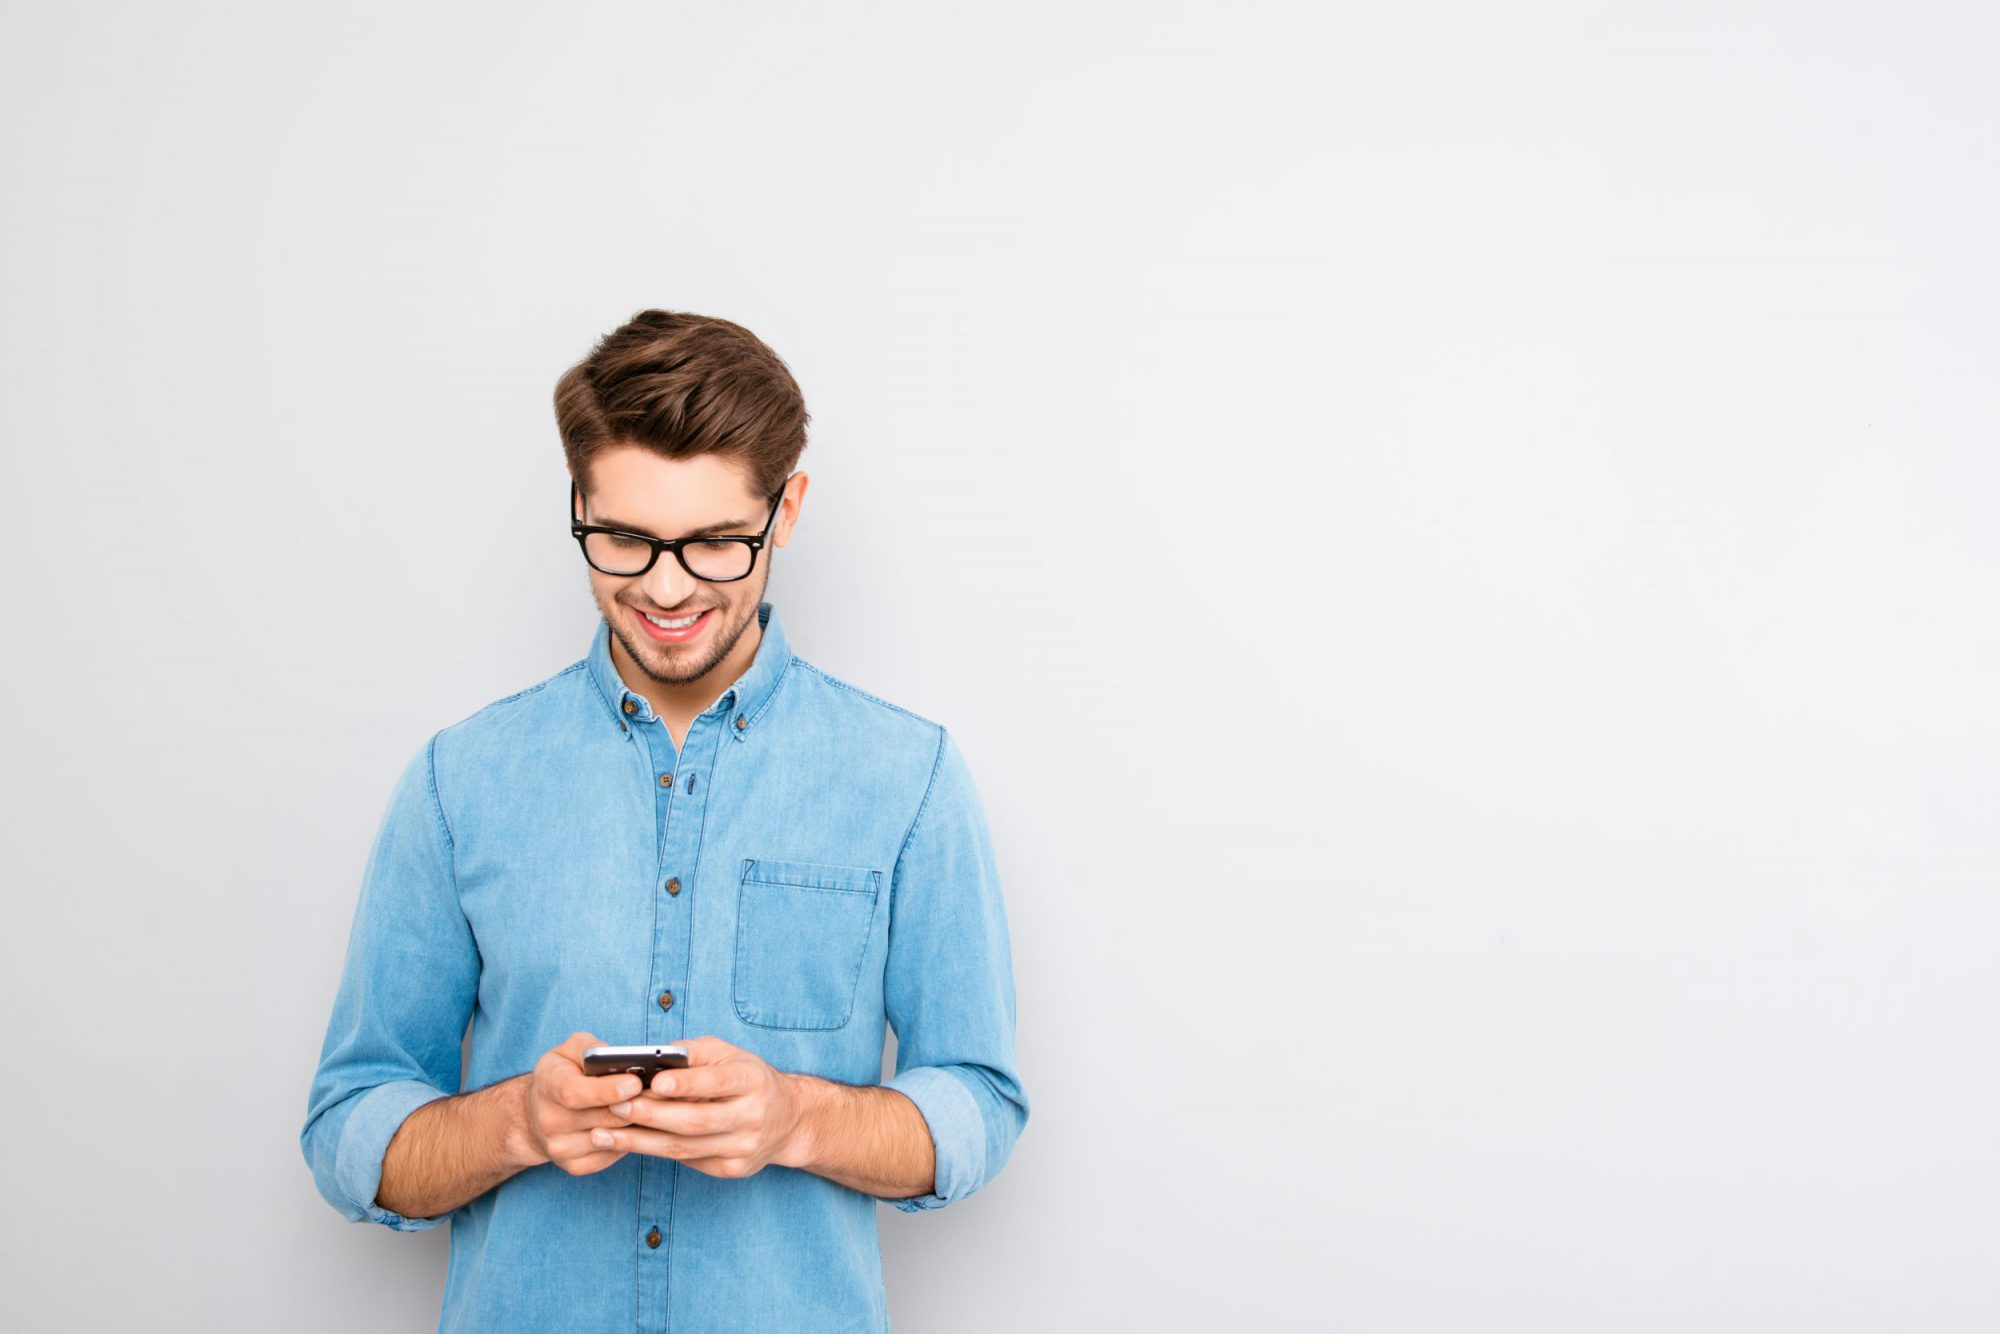 bring-SMS-into-your-marketing-plan